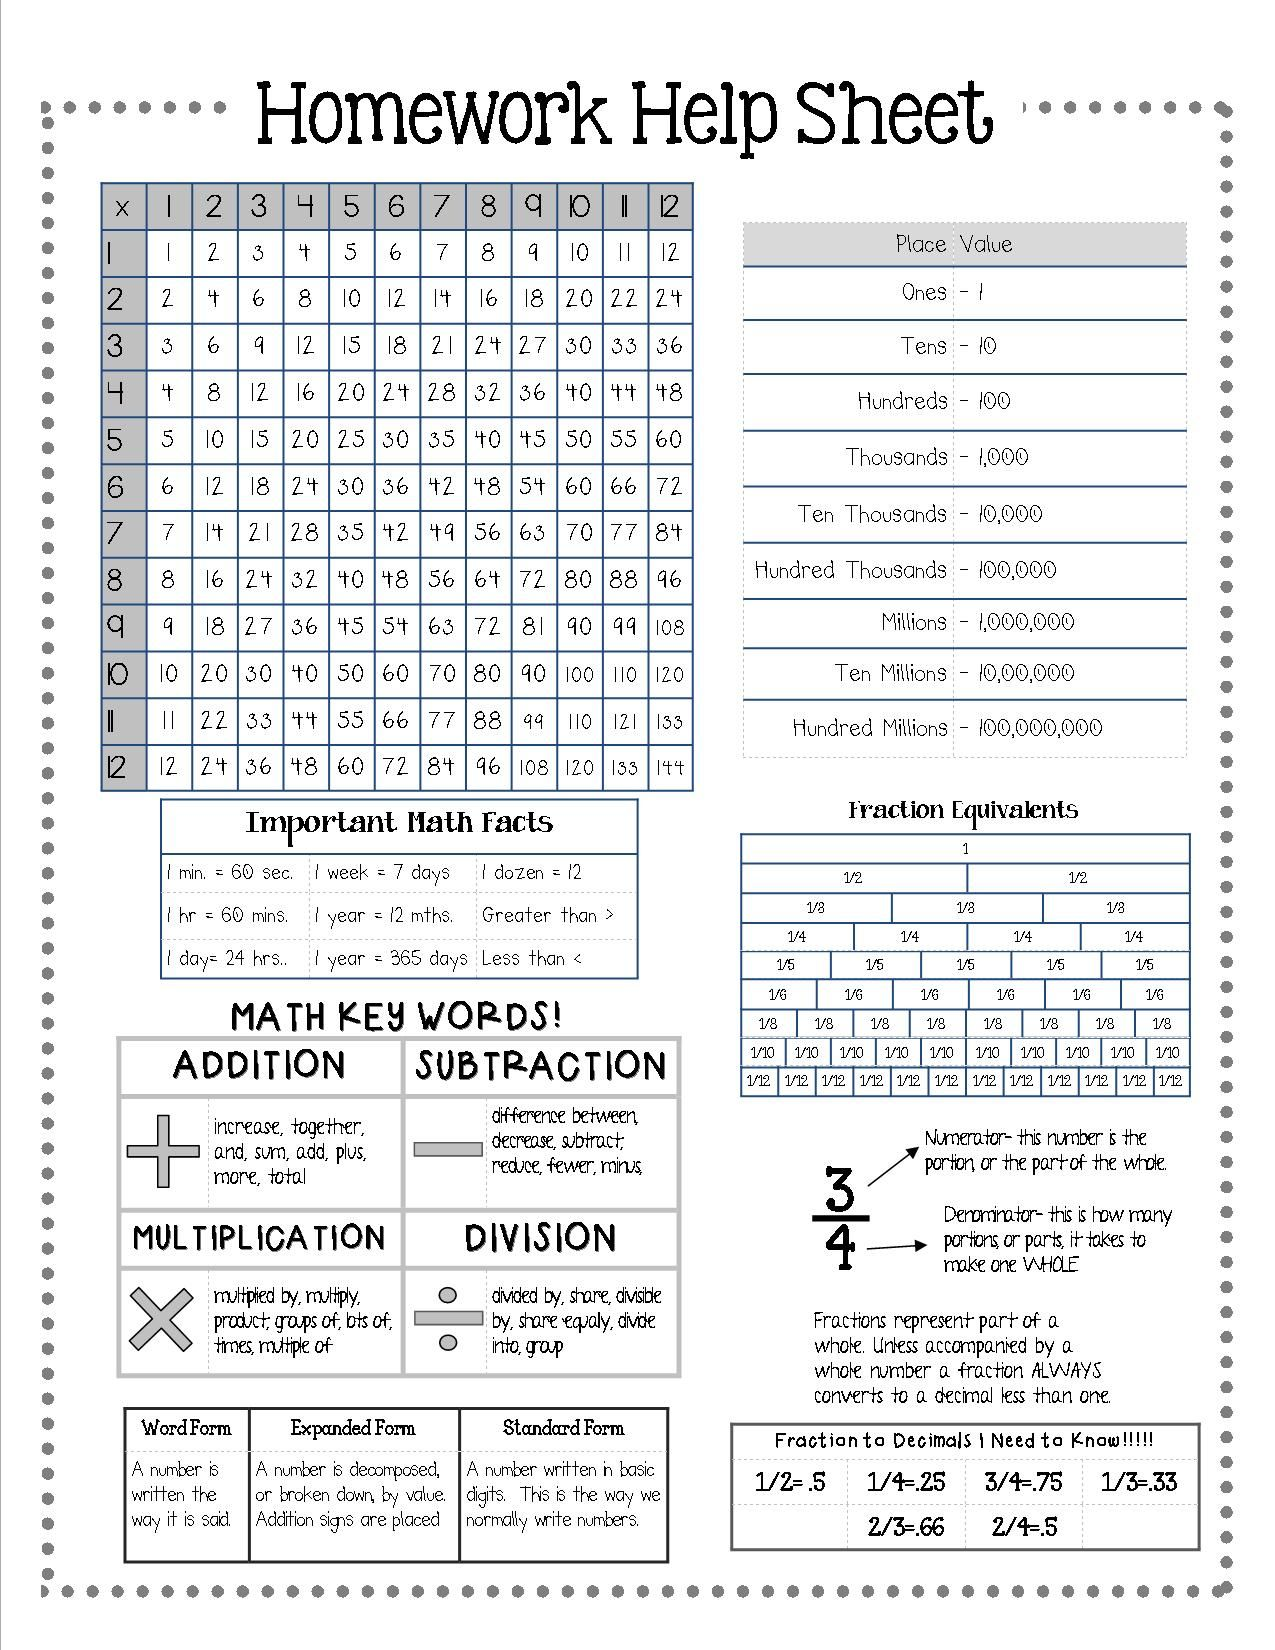 A Homework Help Sheet For Students To Keep In Their